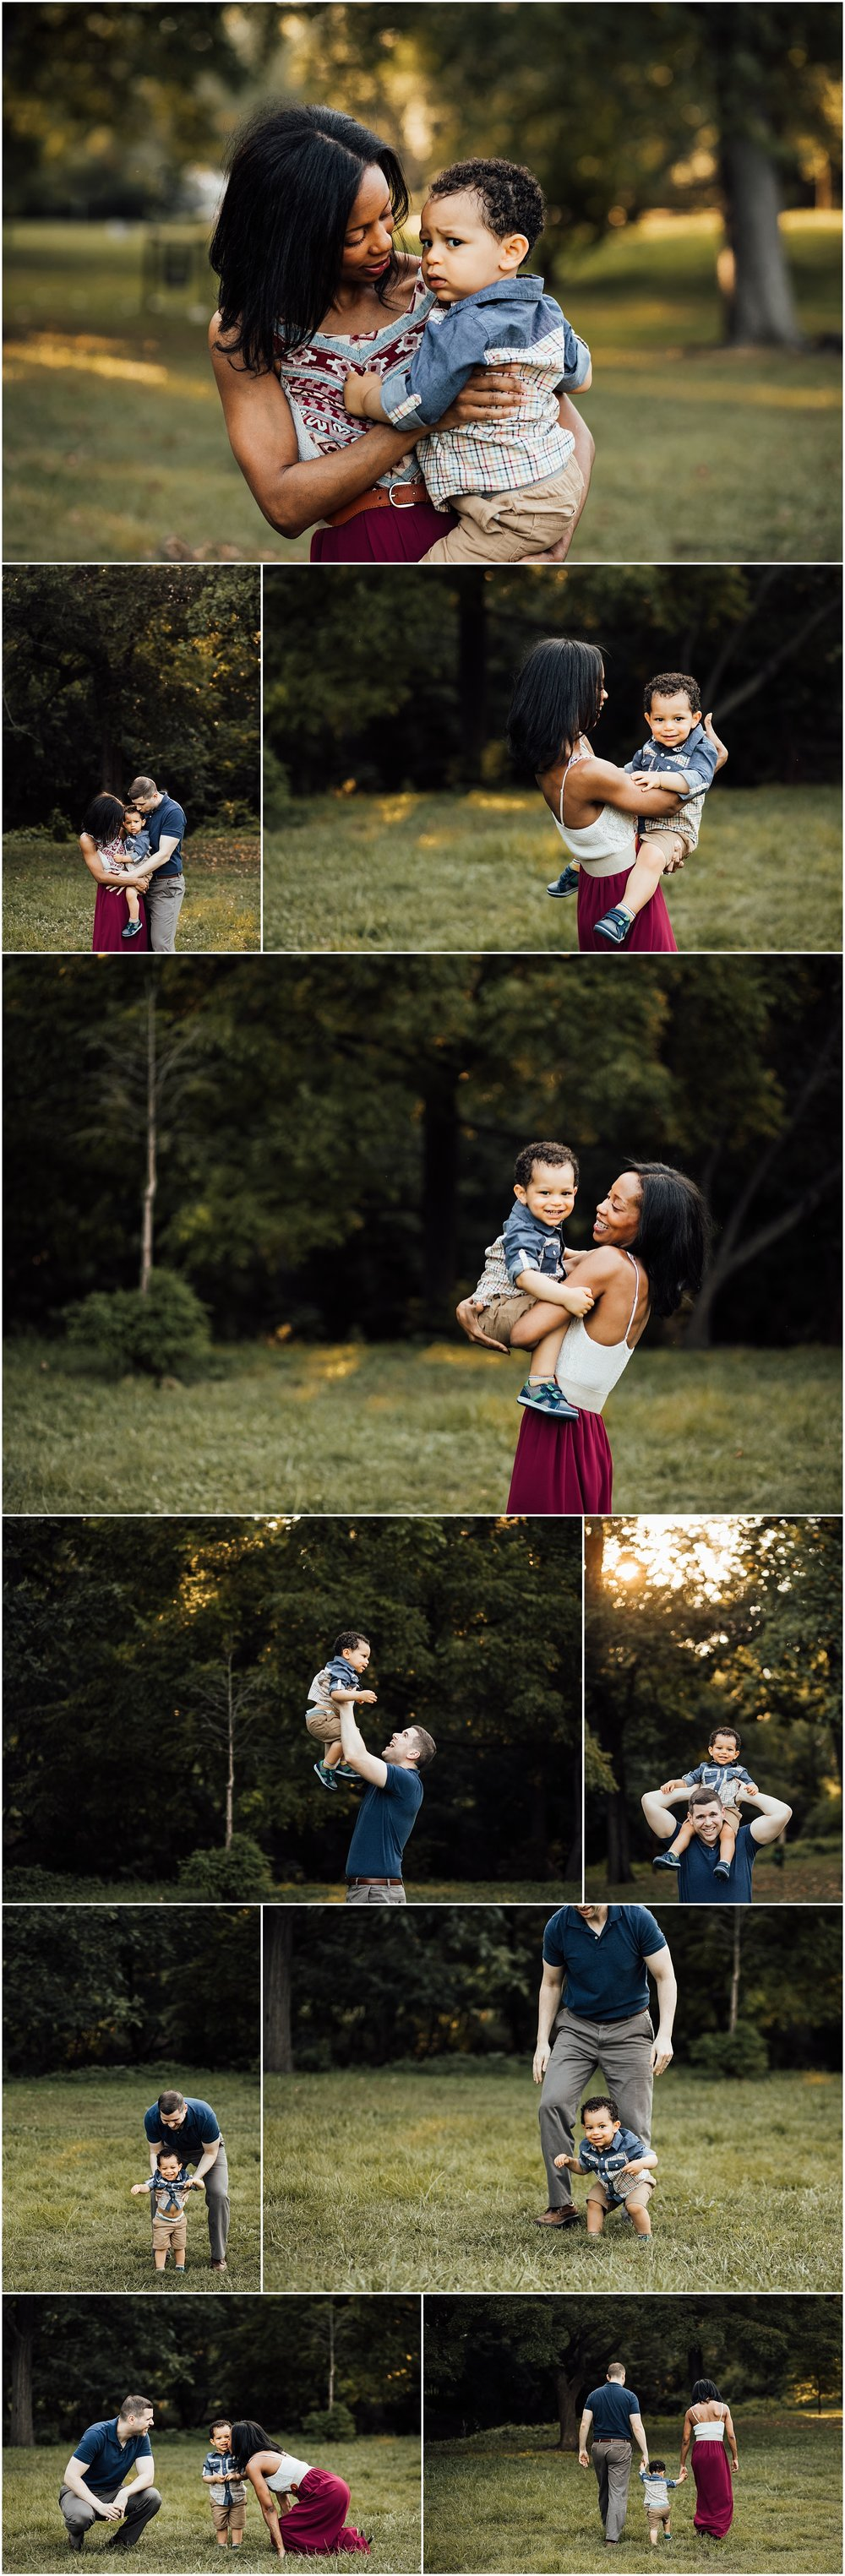 Toddler photo session by Madison Alabama family photographer Rachel K Photo